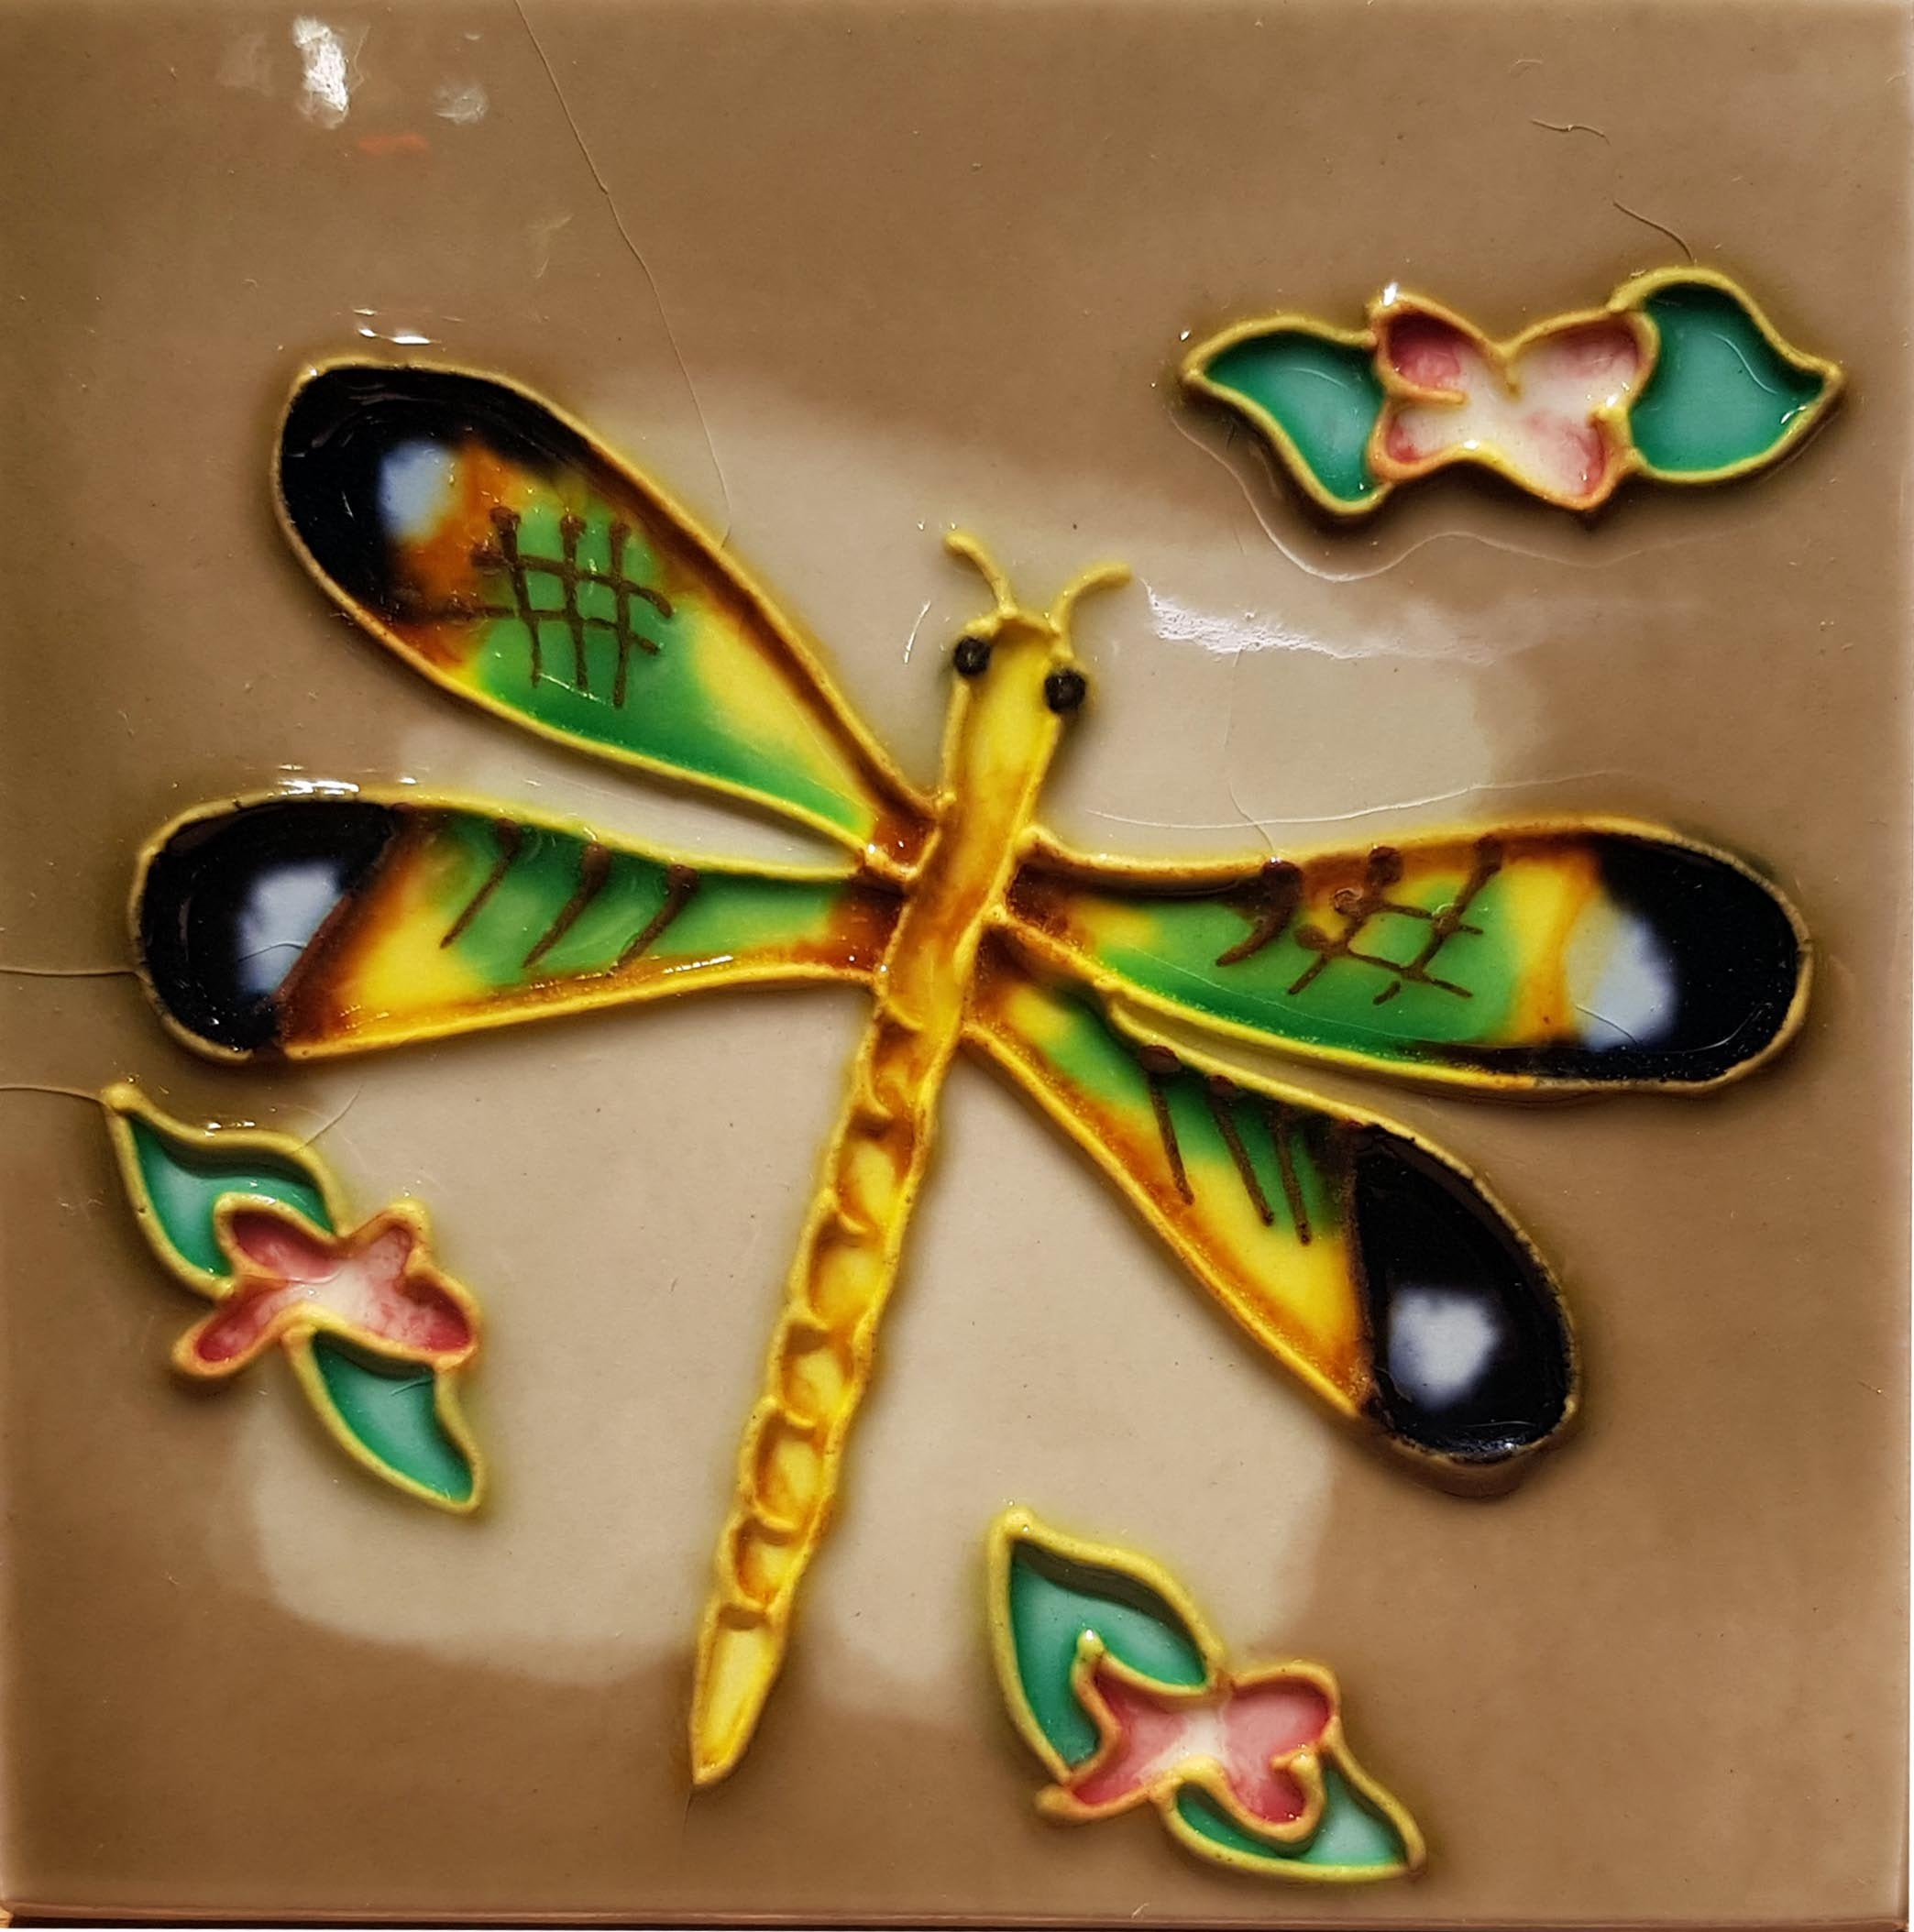 1009 Dragonfly with Red Flower 10cm x 10cm Ceramic Tile